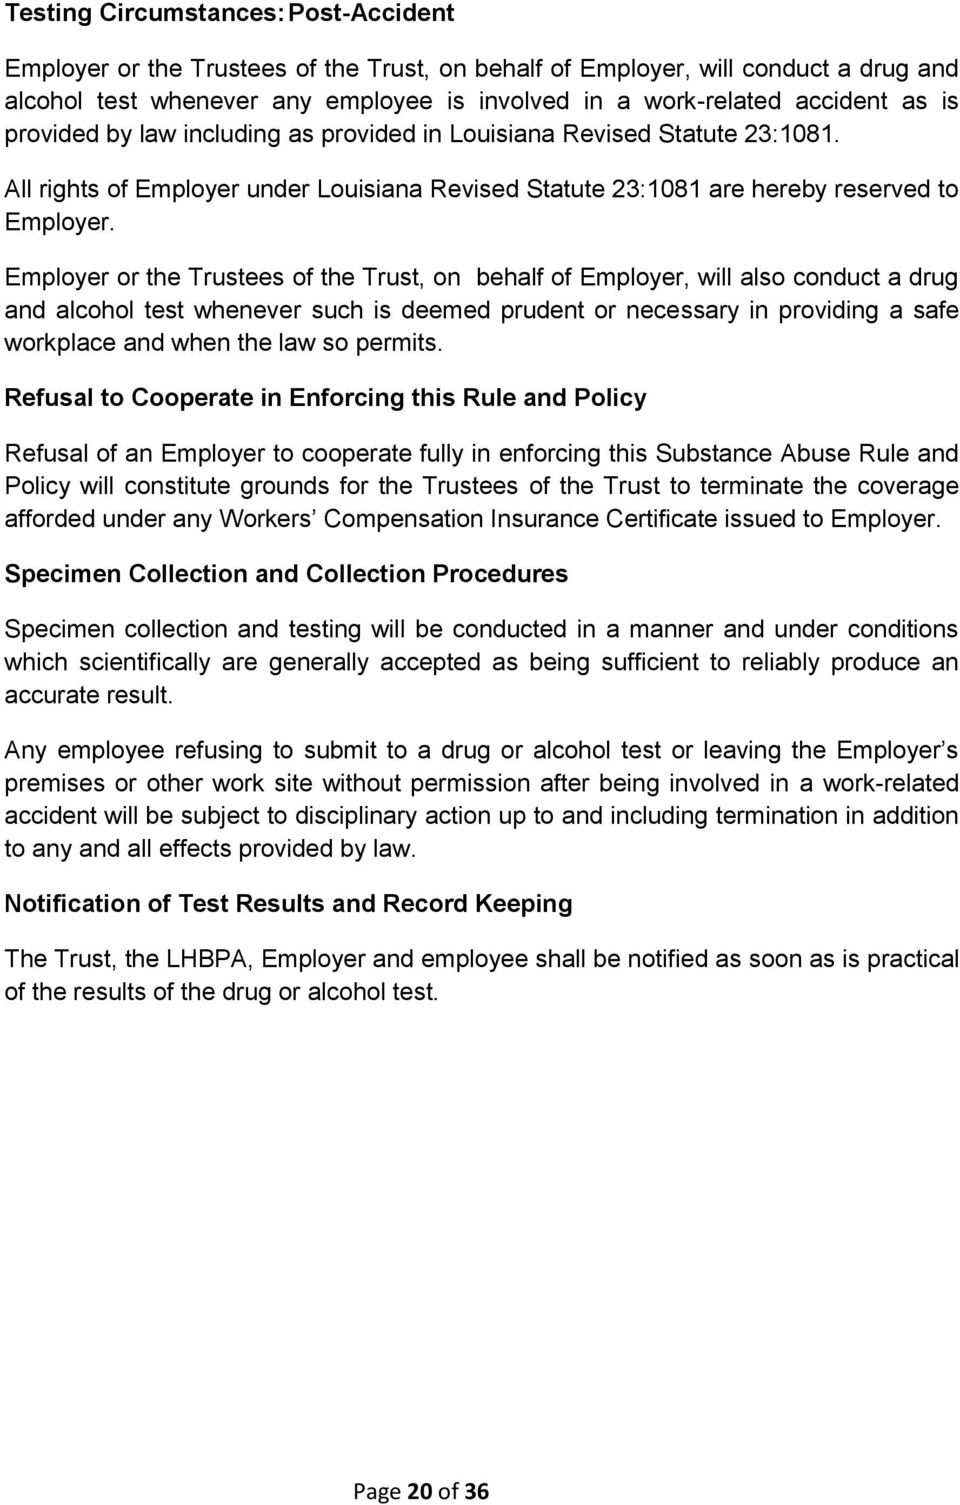 Employer or the Trustees of the Trust, on behalf of Employer, will also conduct a drug and alcohol test whenever such is deemed prudent or necessary in providing a safe workplace and when the law so